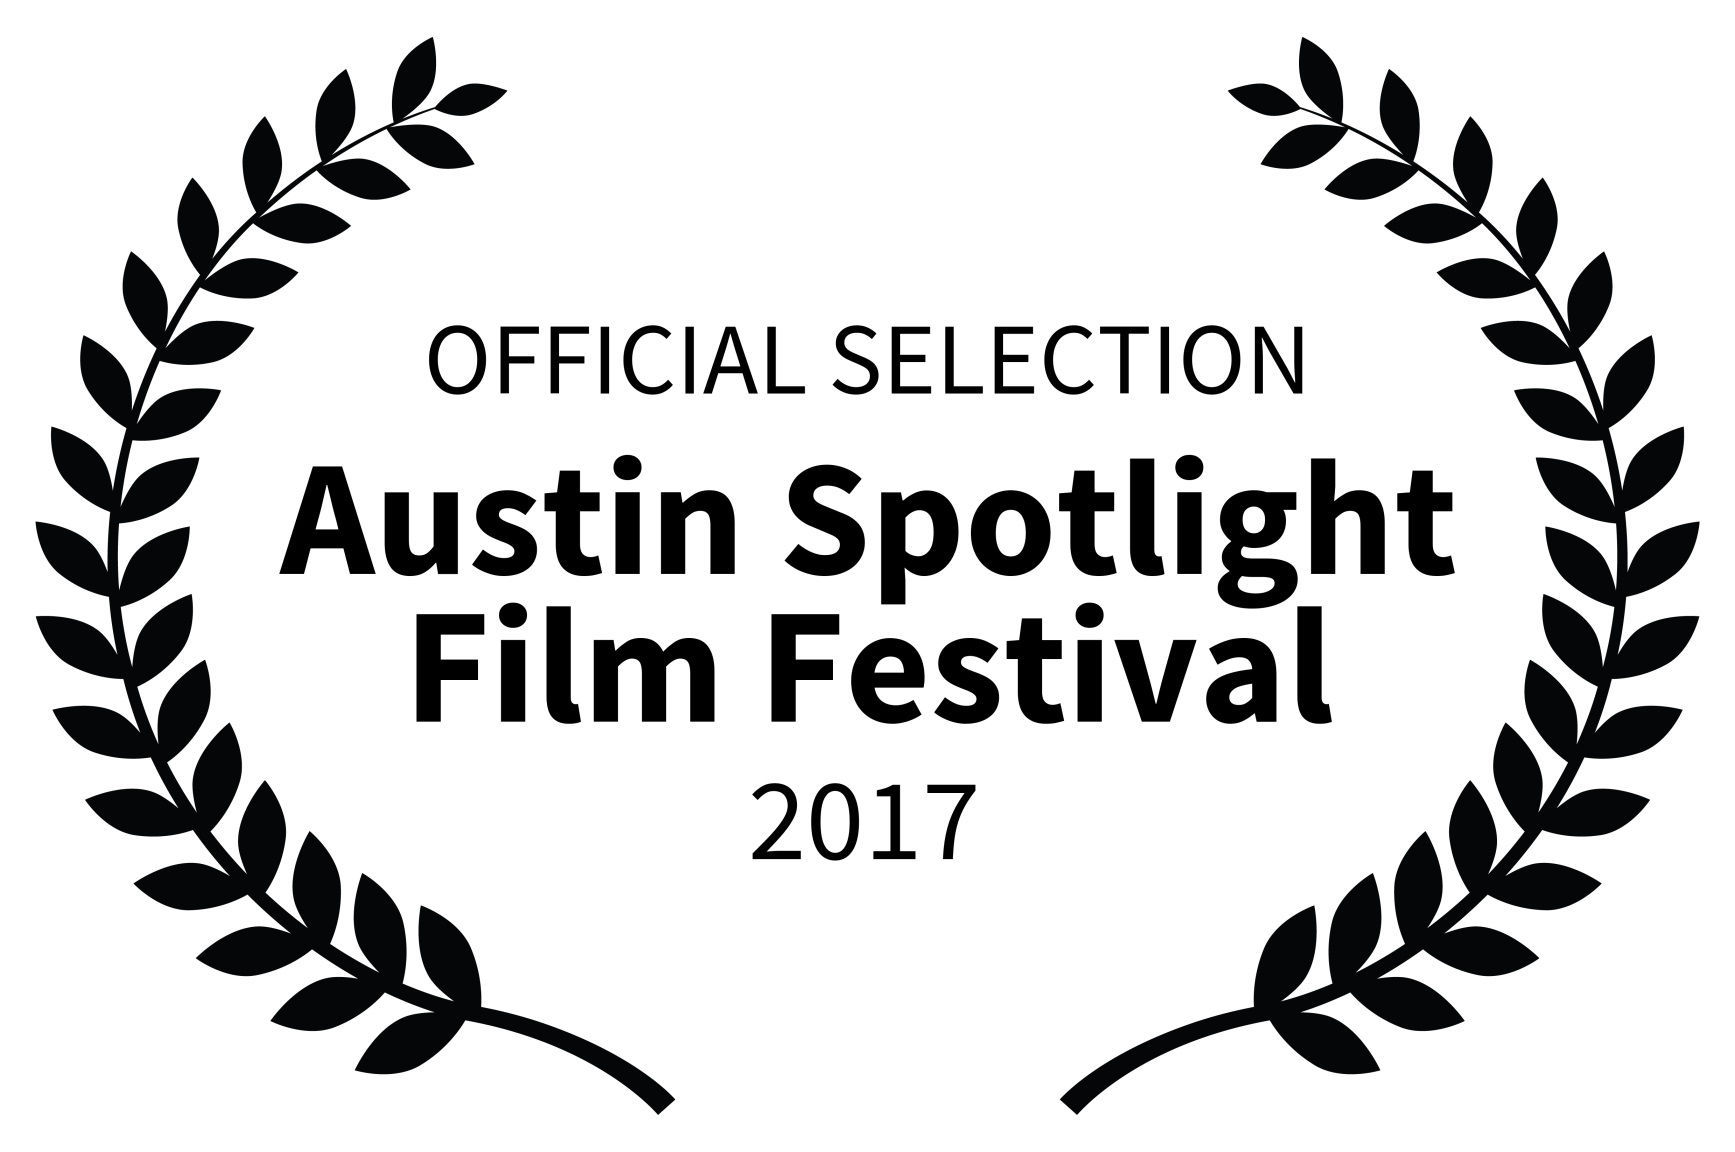 OFFICIAL_SELECTION_-_Austin_Spotlight_Film_Festival_-_2017